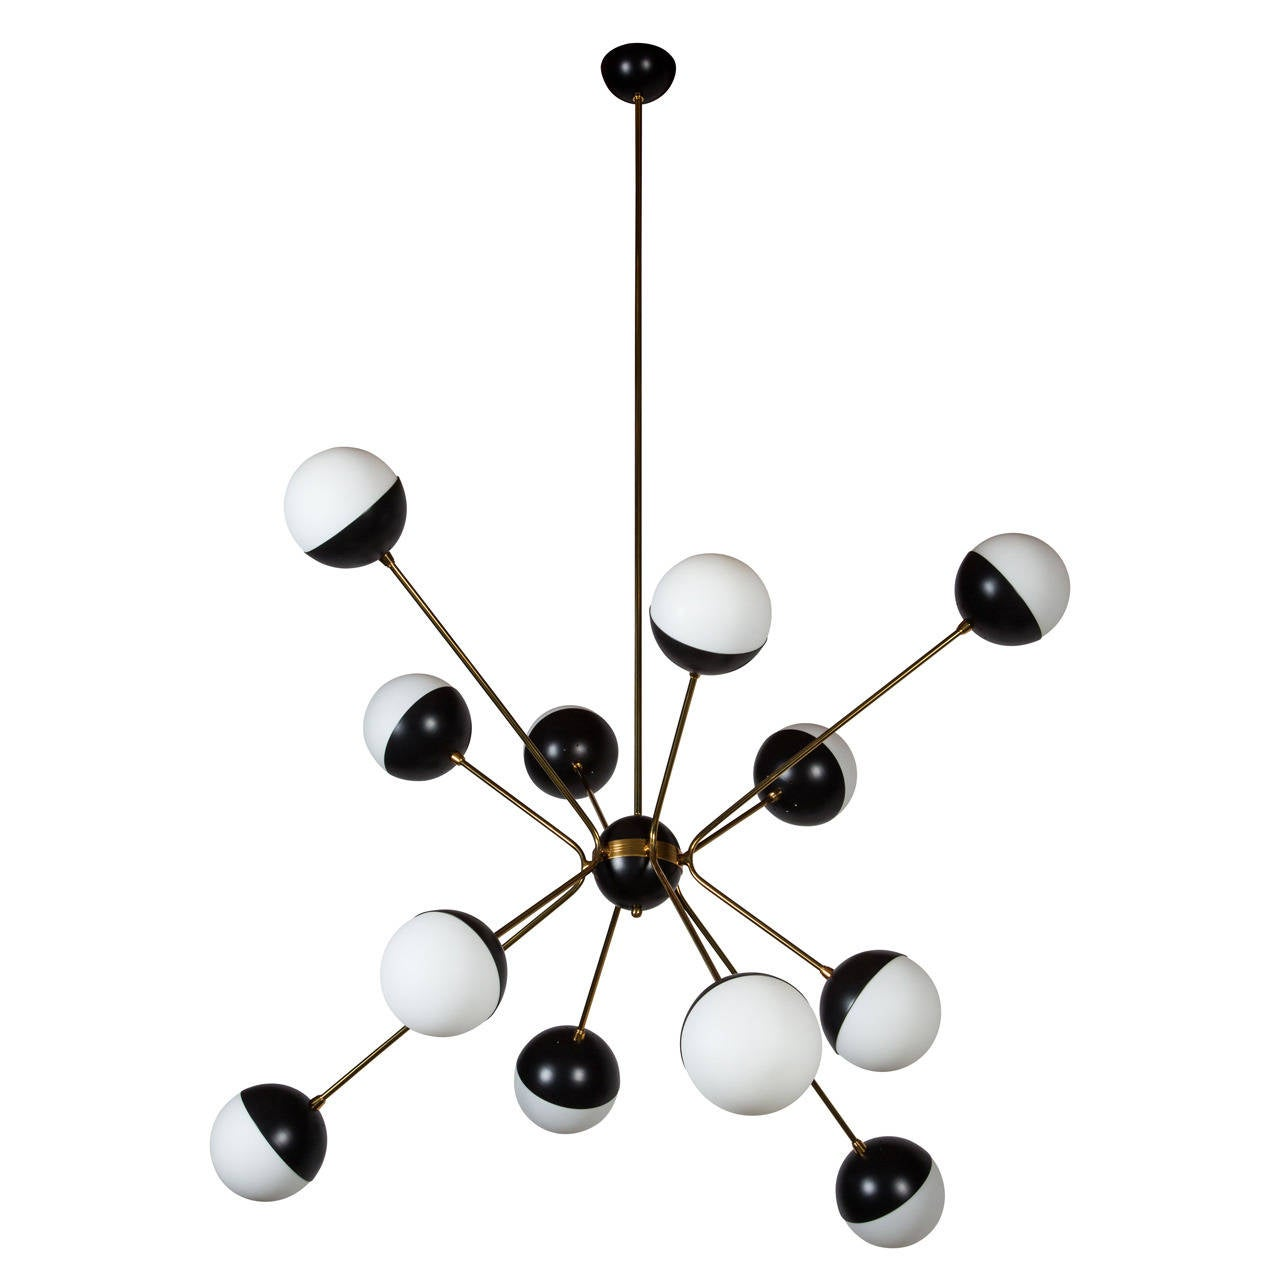 Rewire custom orb chandelier for sale at 1stdibs rewire custom orb chandelier for sale arubaitofo Gallery